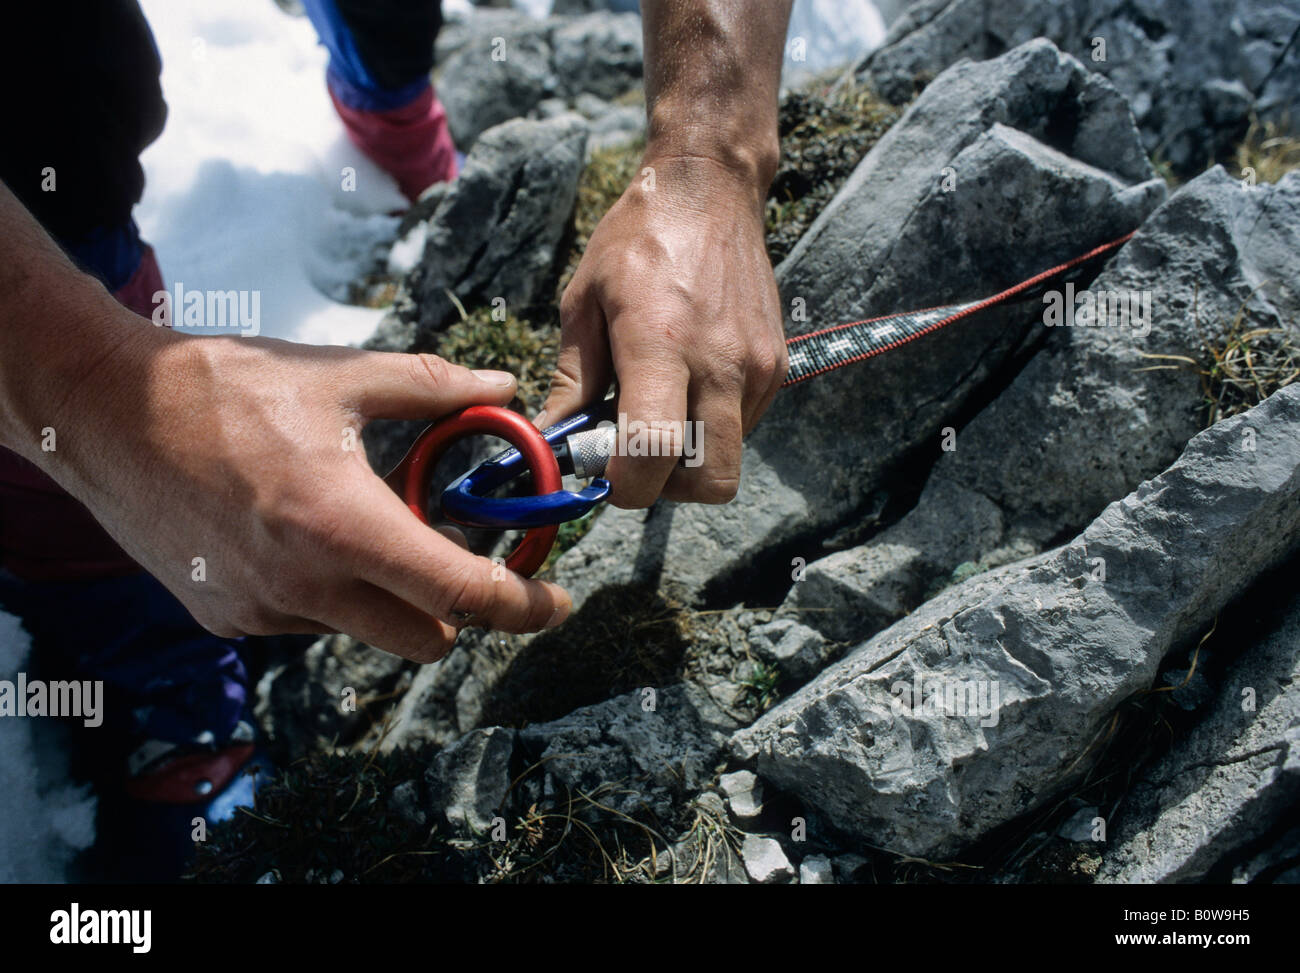 Male hands hooking a figure eight descender into an aluminium carabiner tied to a rock with a loop of cord - Stock Image